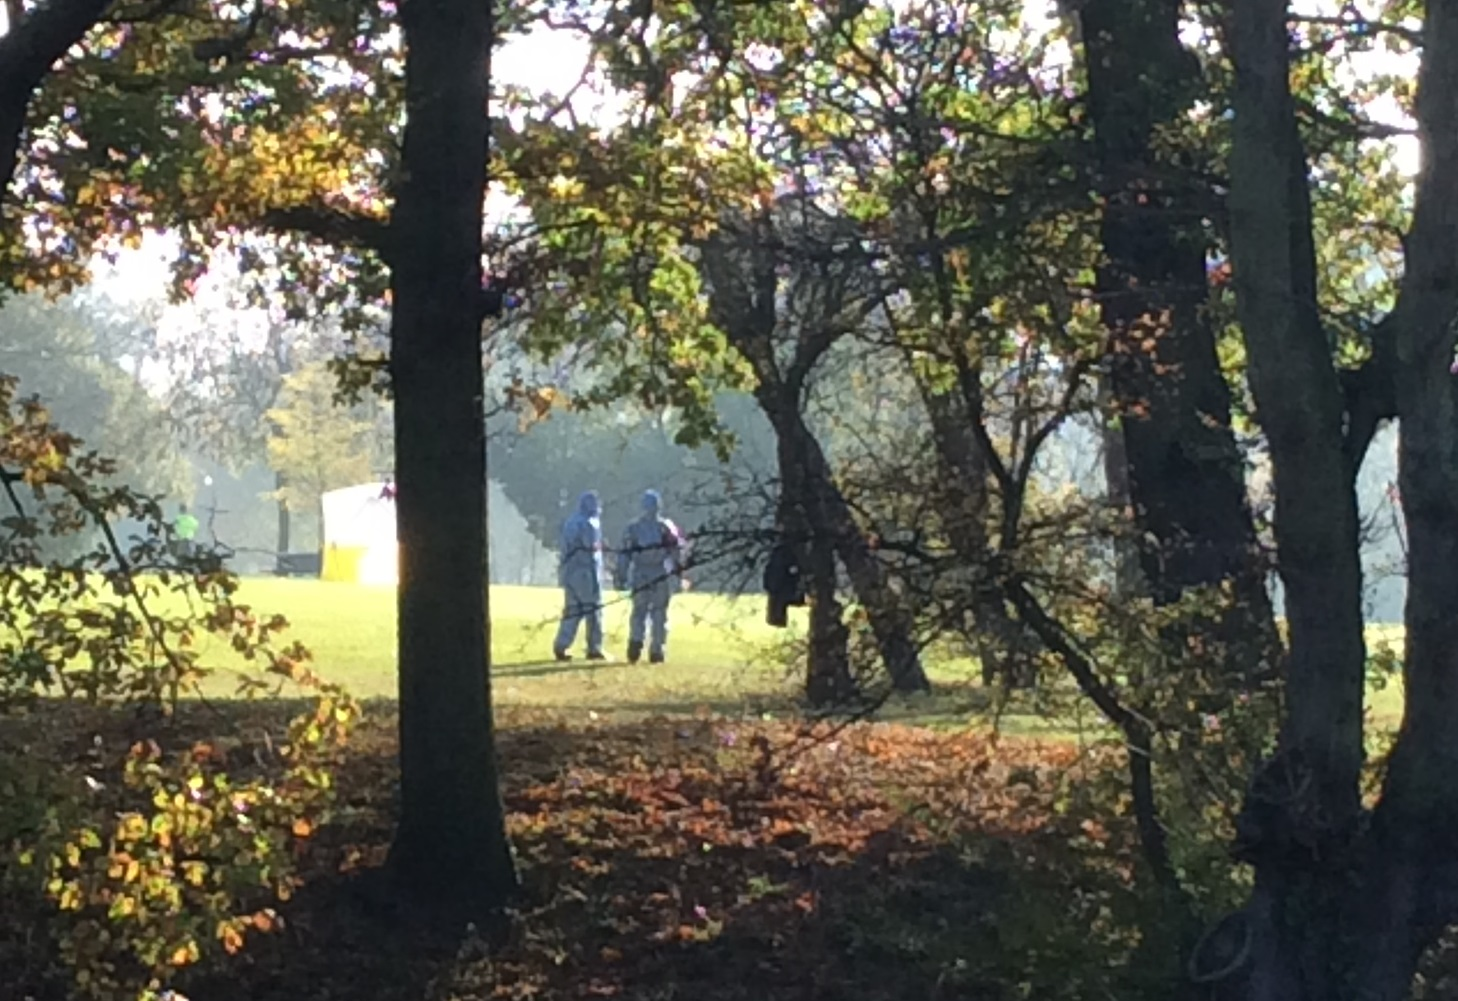 Murder probe launched after teen stabbed to death in London park